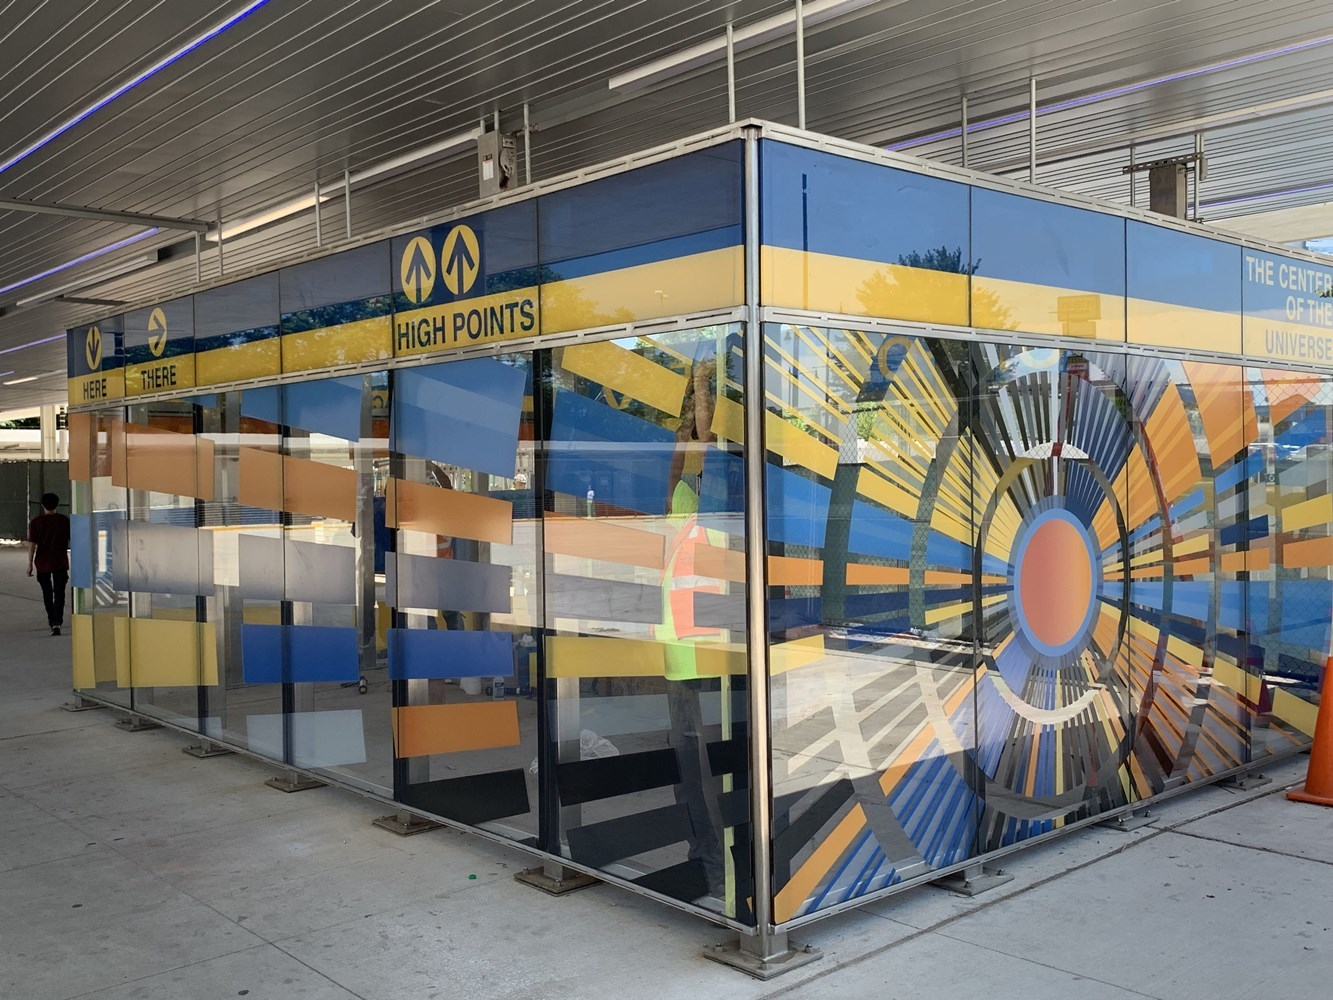 Bus waiting area at Jefferson Park featuring new art glass installation